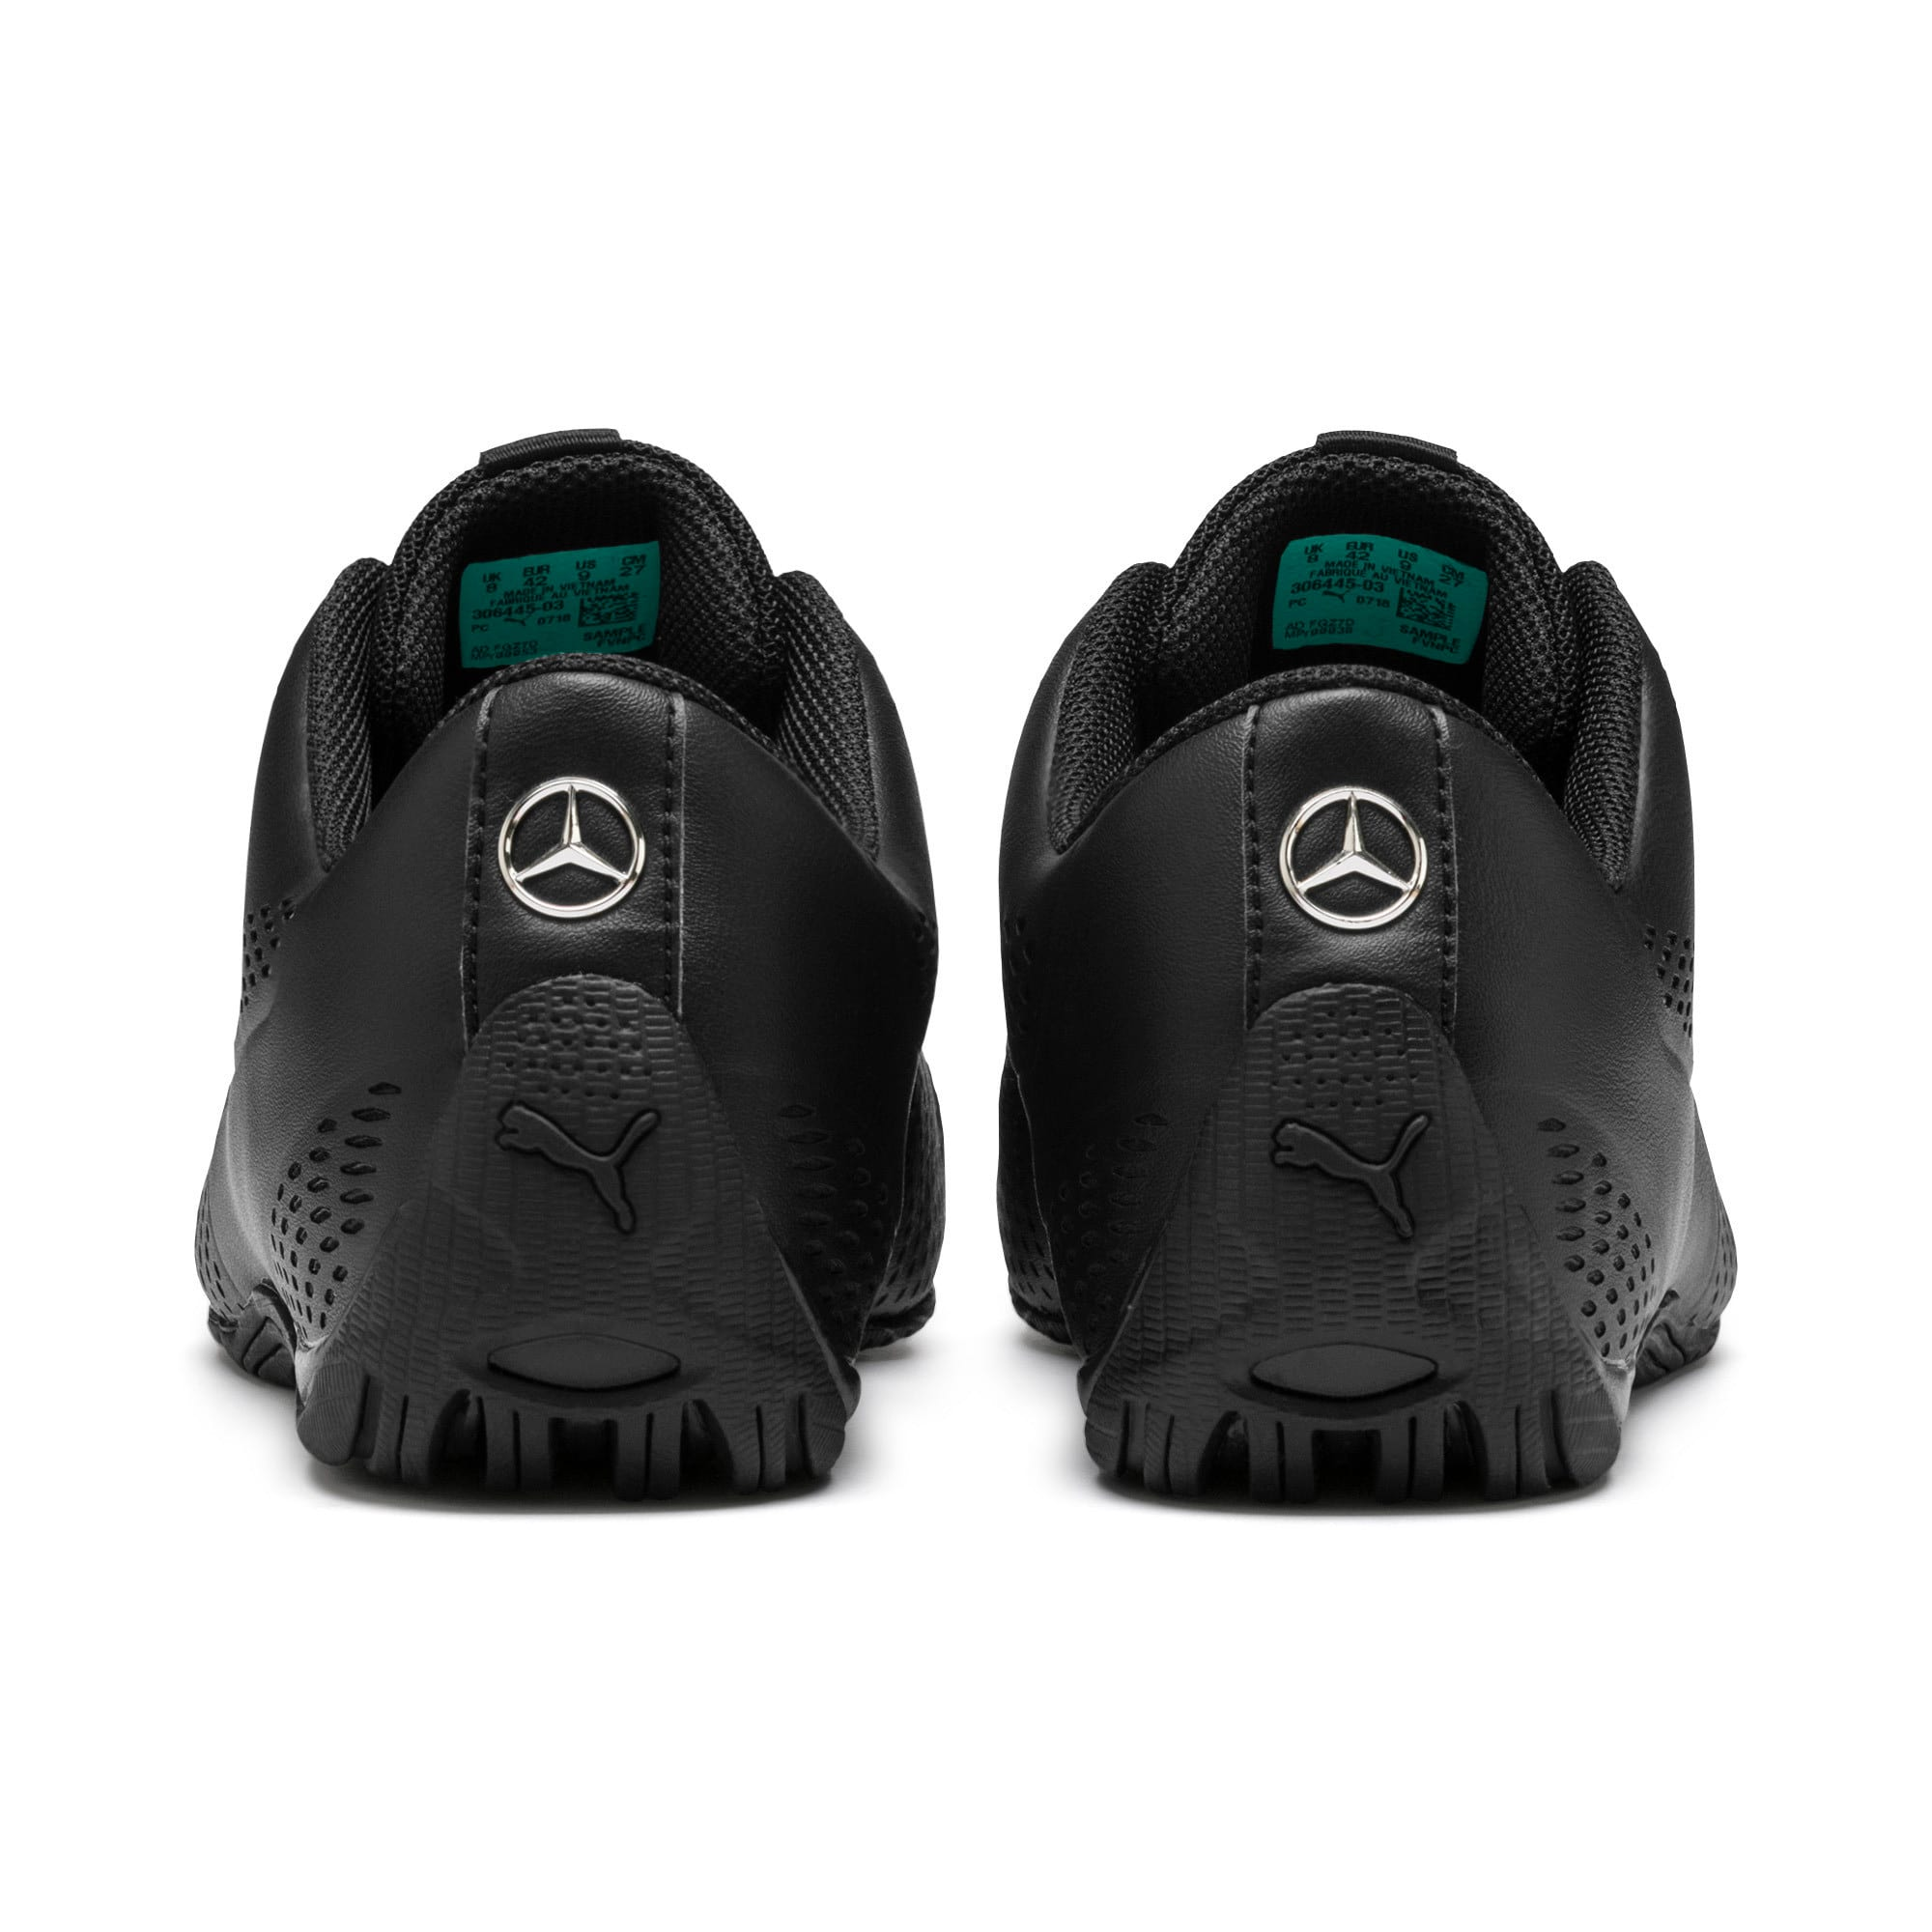 Thumbnail 4 of Mercedes AMG Petronas Drift Cat 5 Ultra II Shoes, Puma Black-Spectra Green, medium